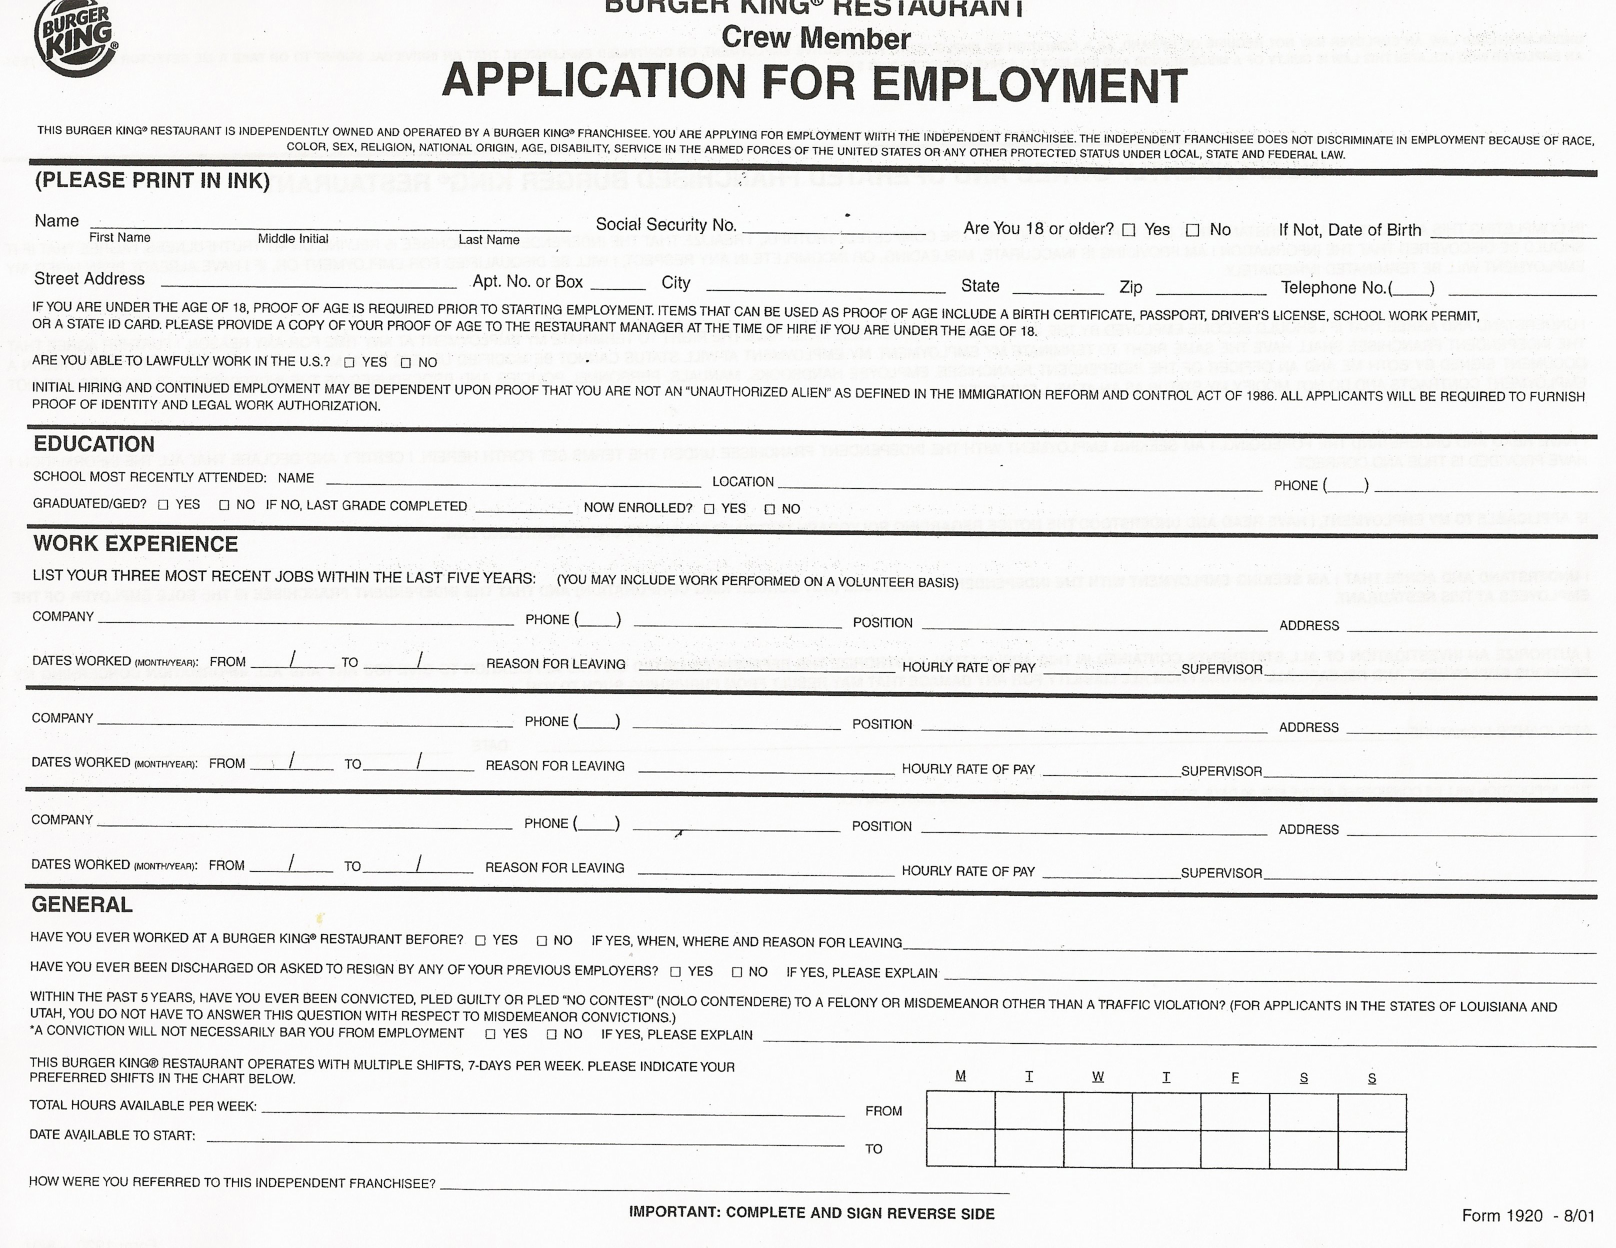 employee application form job application printable job applications printable job application nq9ifp1h more